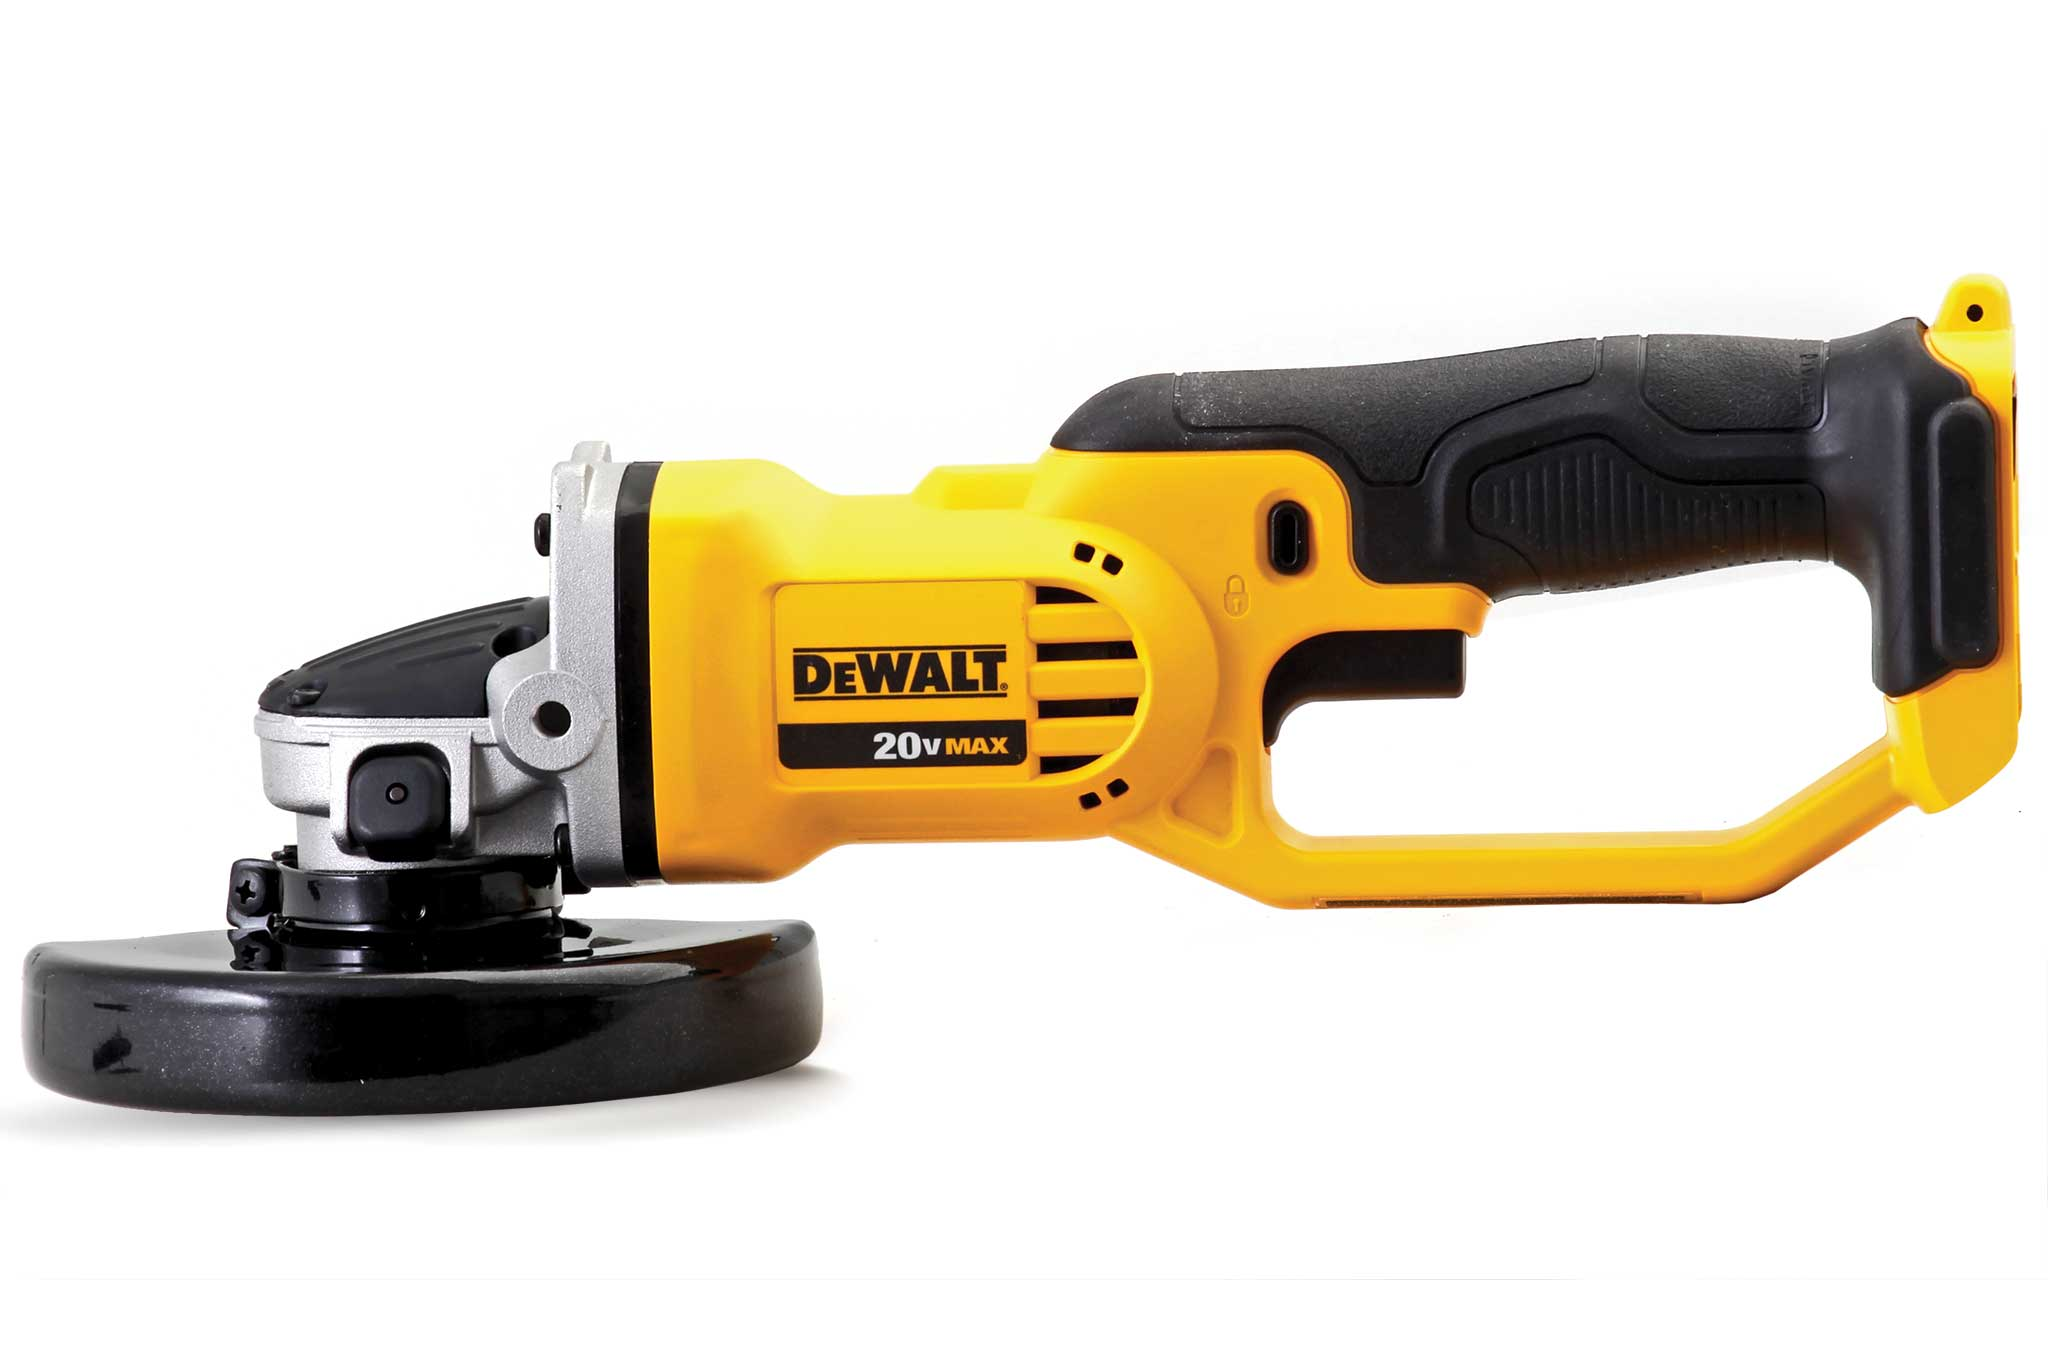 Dewalt Replacement Parts >> Cordless Angle Grinder Reviews - Lowrider